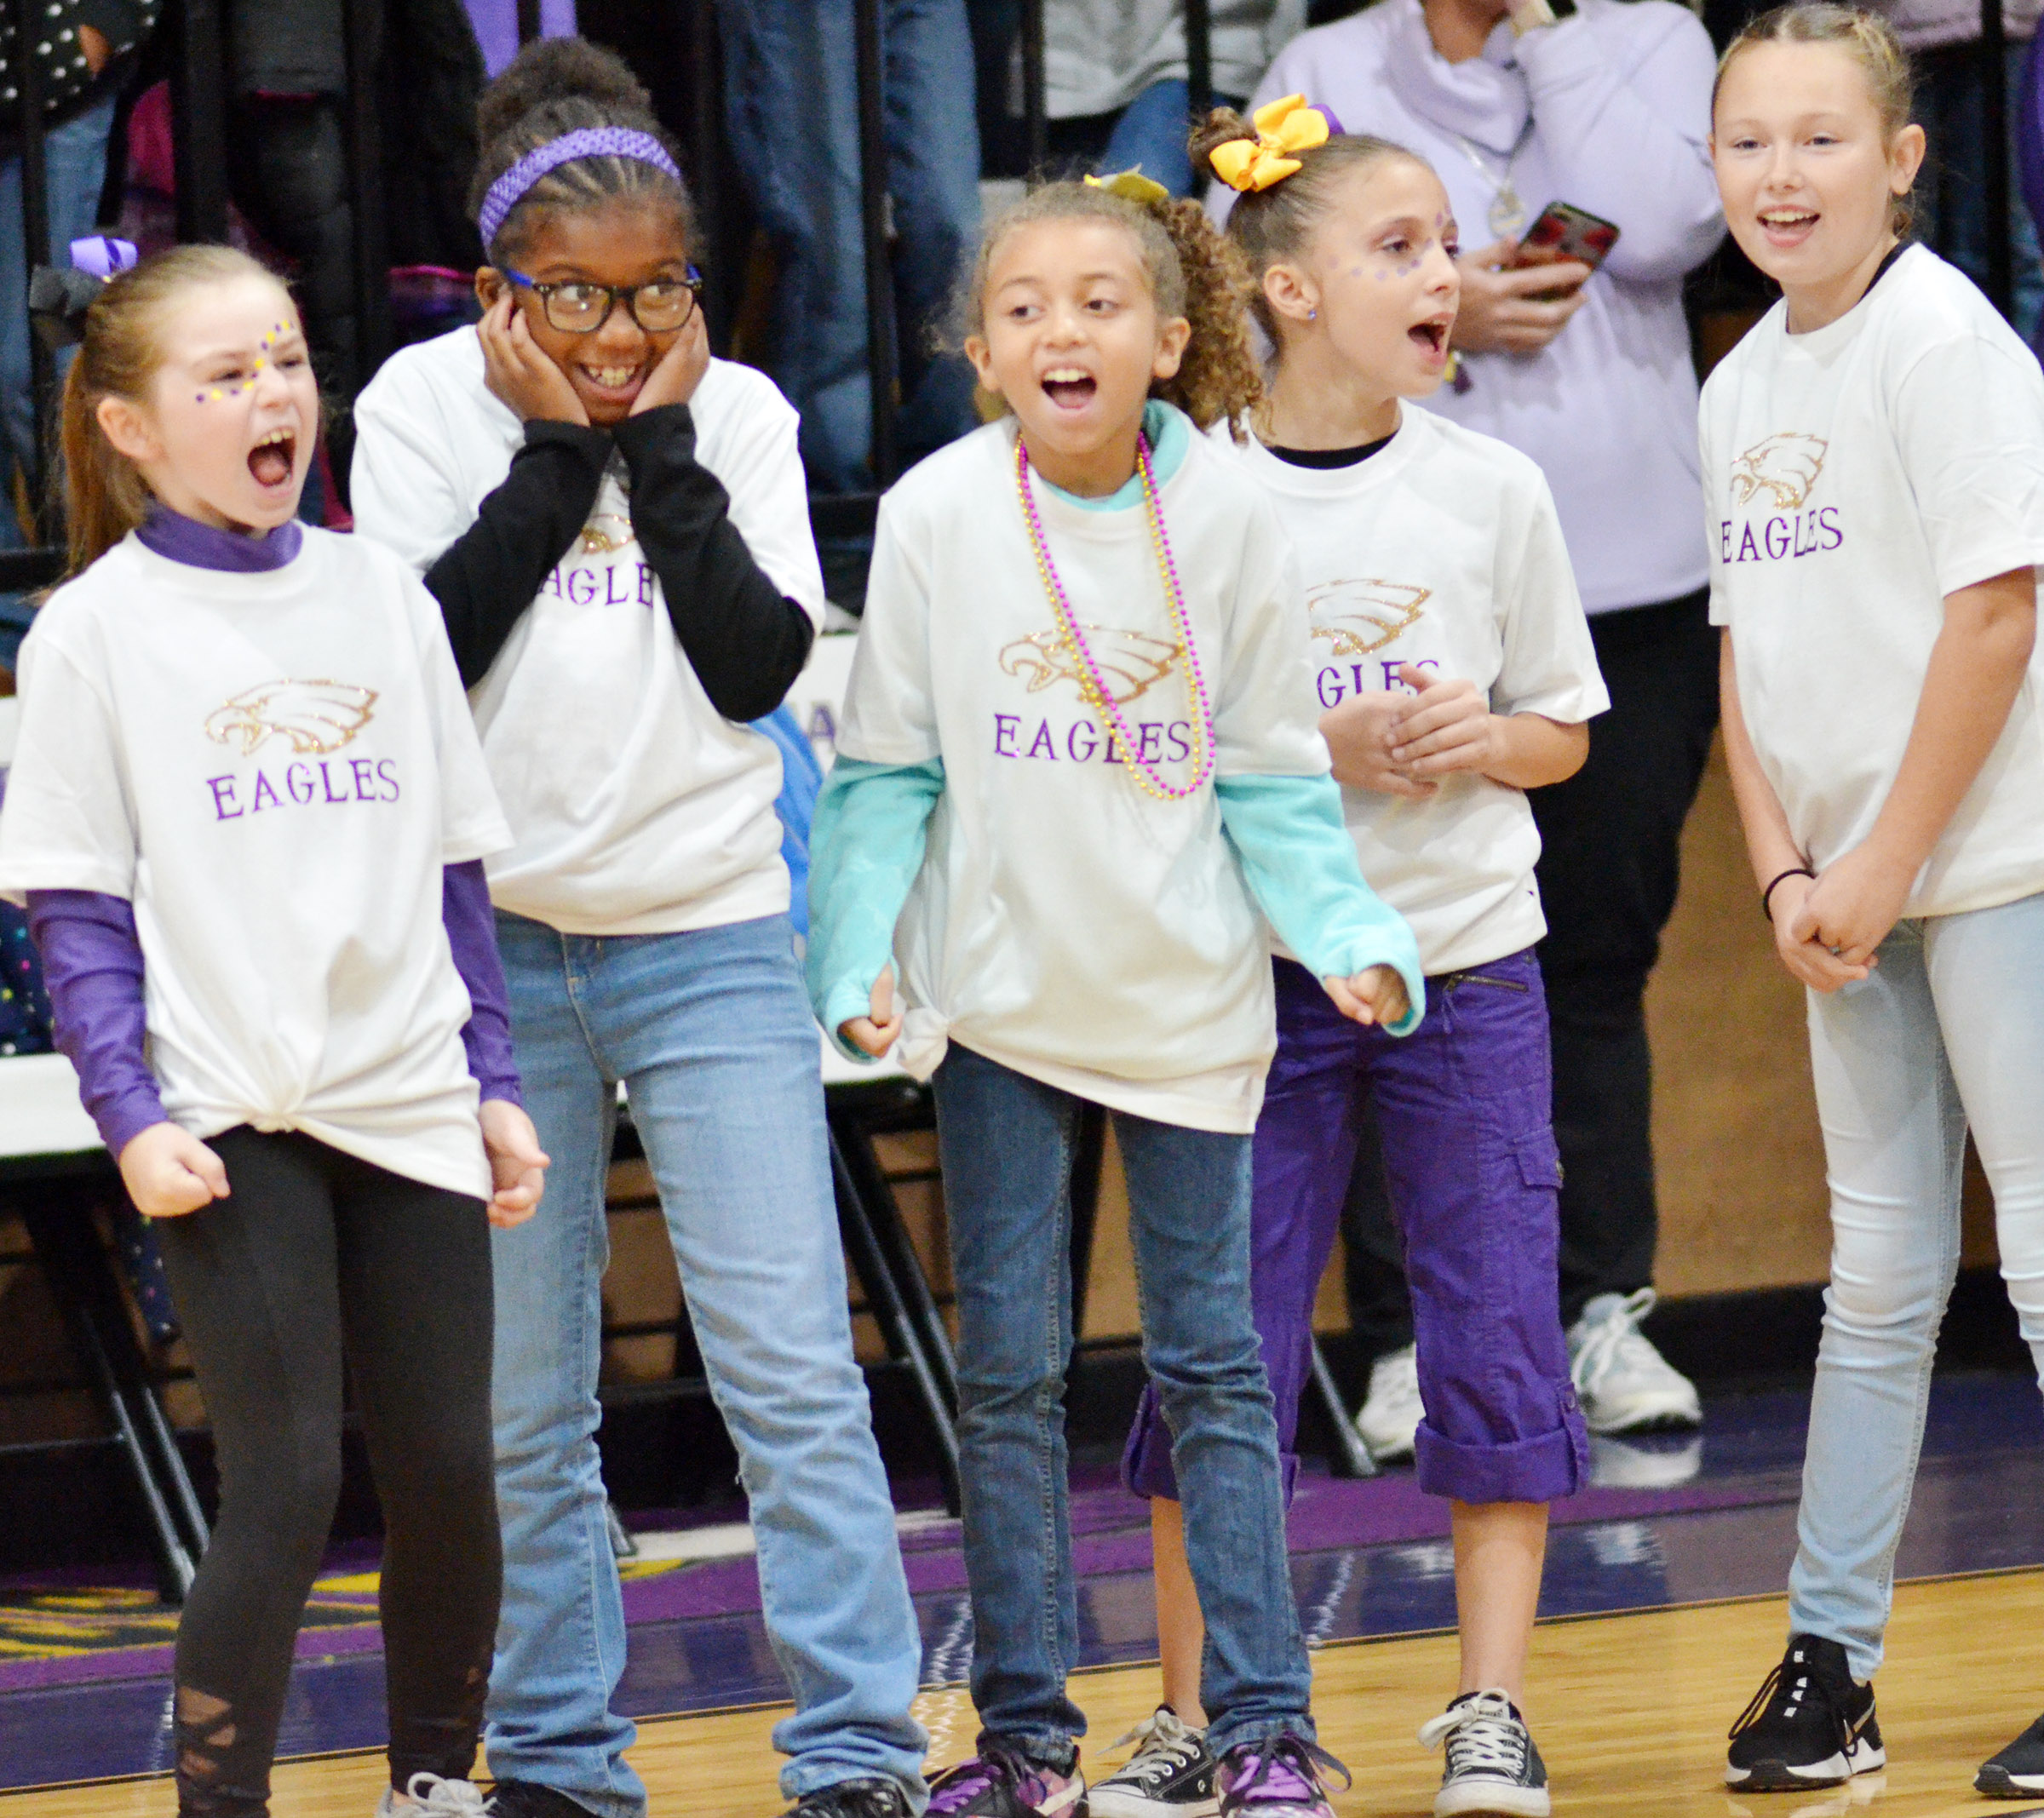 CES cheerleaders yell for the Eagles. From left are third-graders Lainey Price, Willow Griffin, Londyn Smith, Lillian Martin and River McFarland.